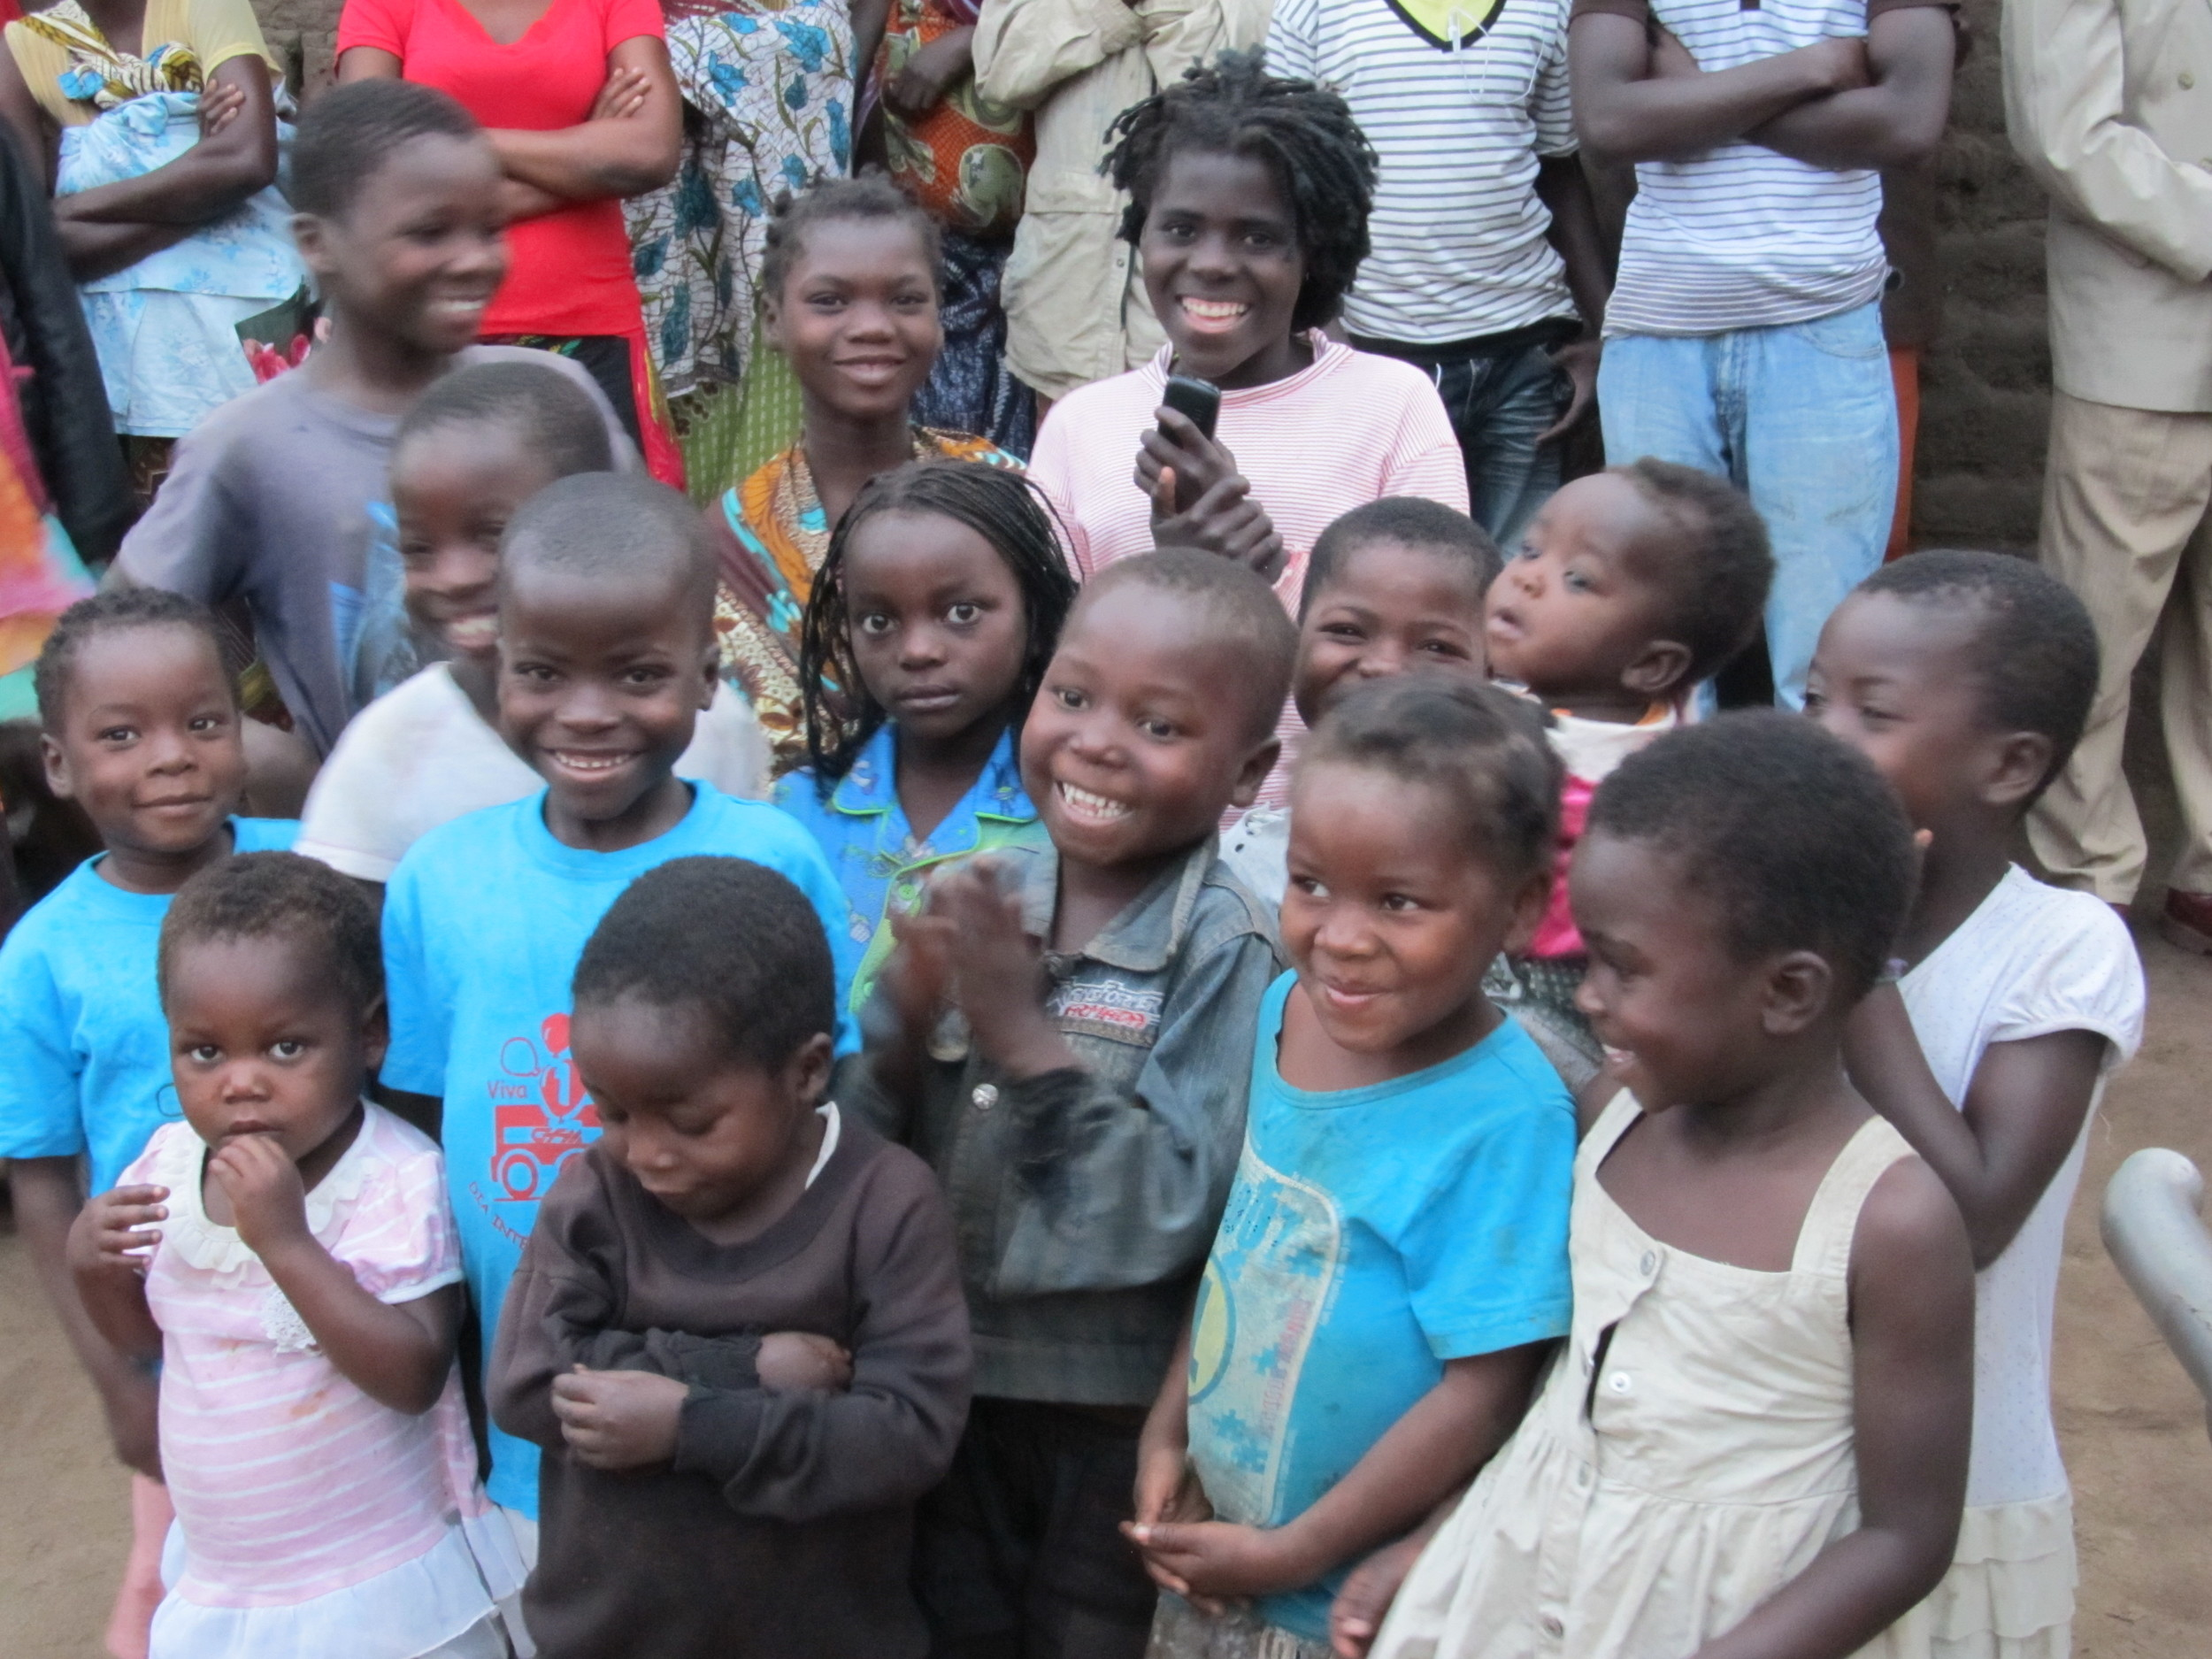 MOZAMBIQUE - Lot of smiling kids.JPG